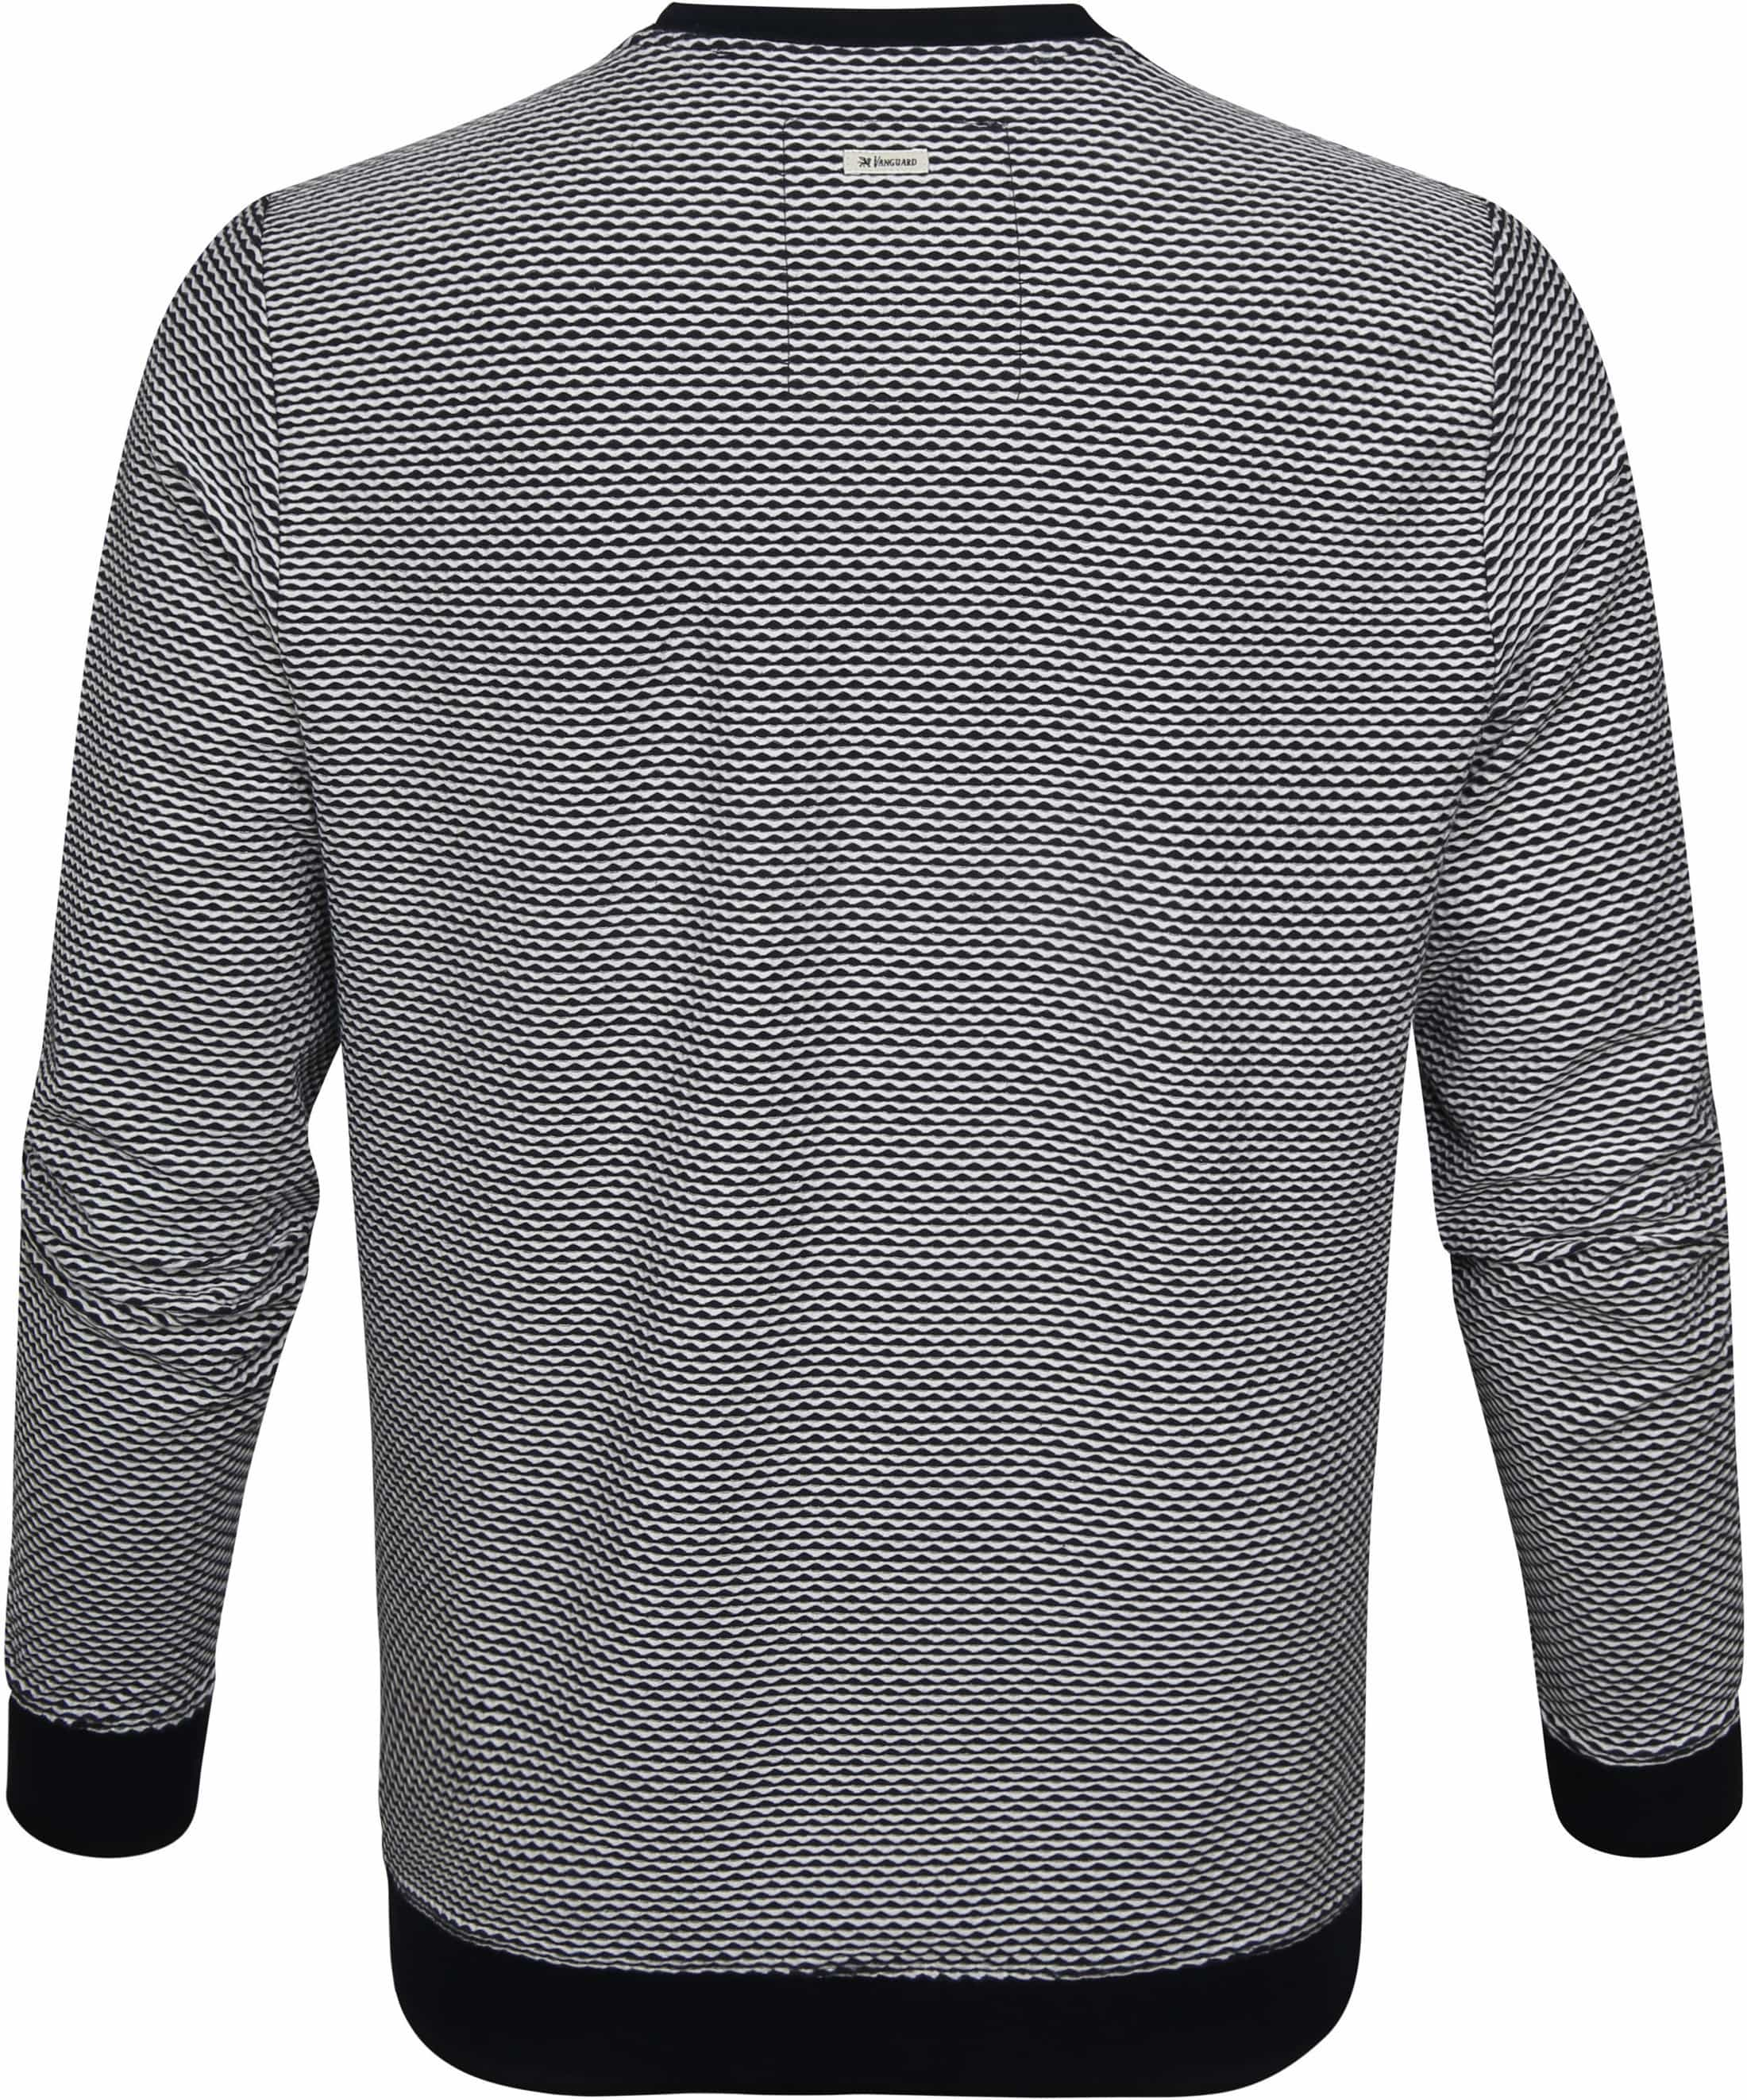 Vanguard Sweater Shadow Structure Donkerblauw foto 3